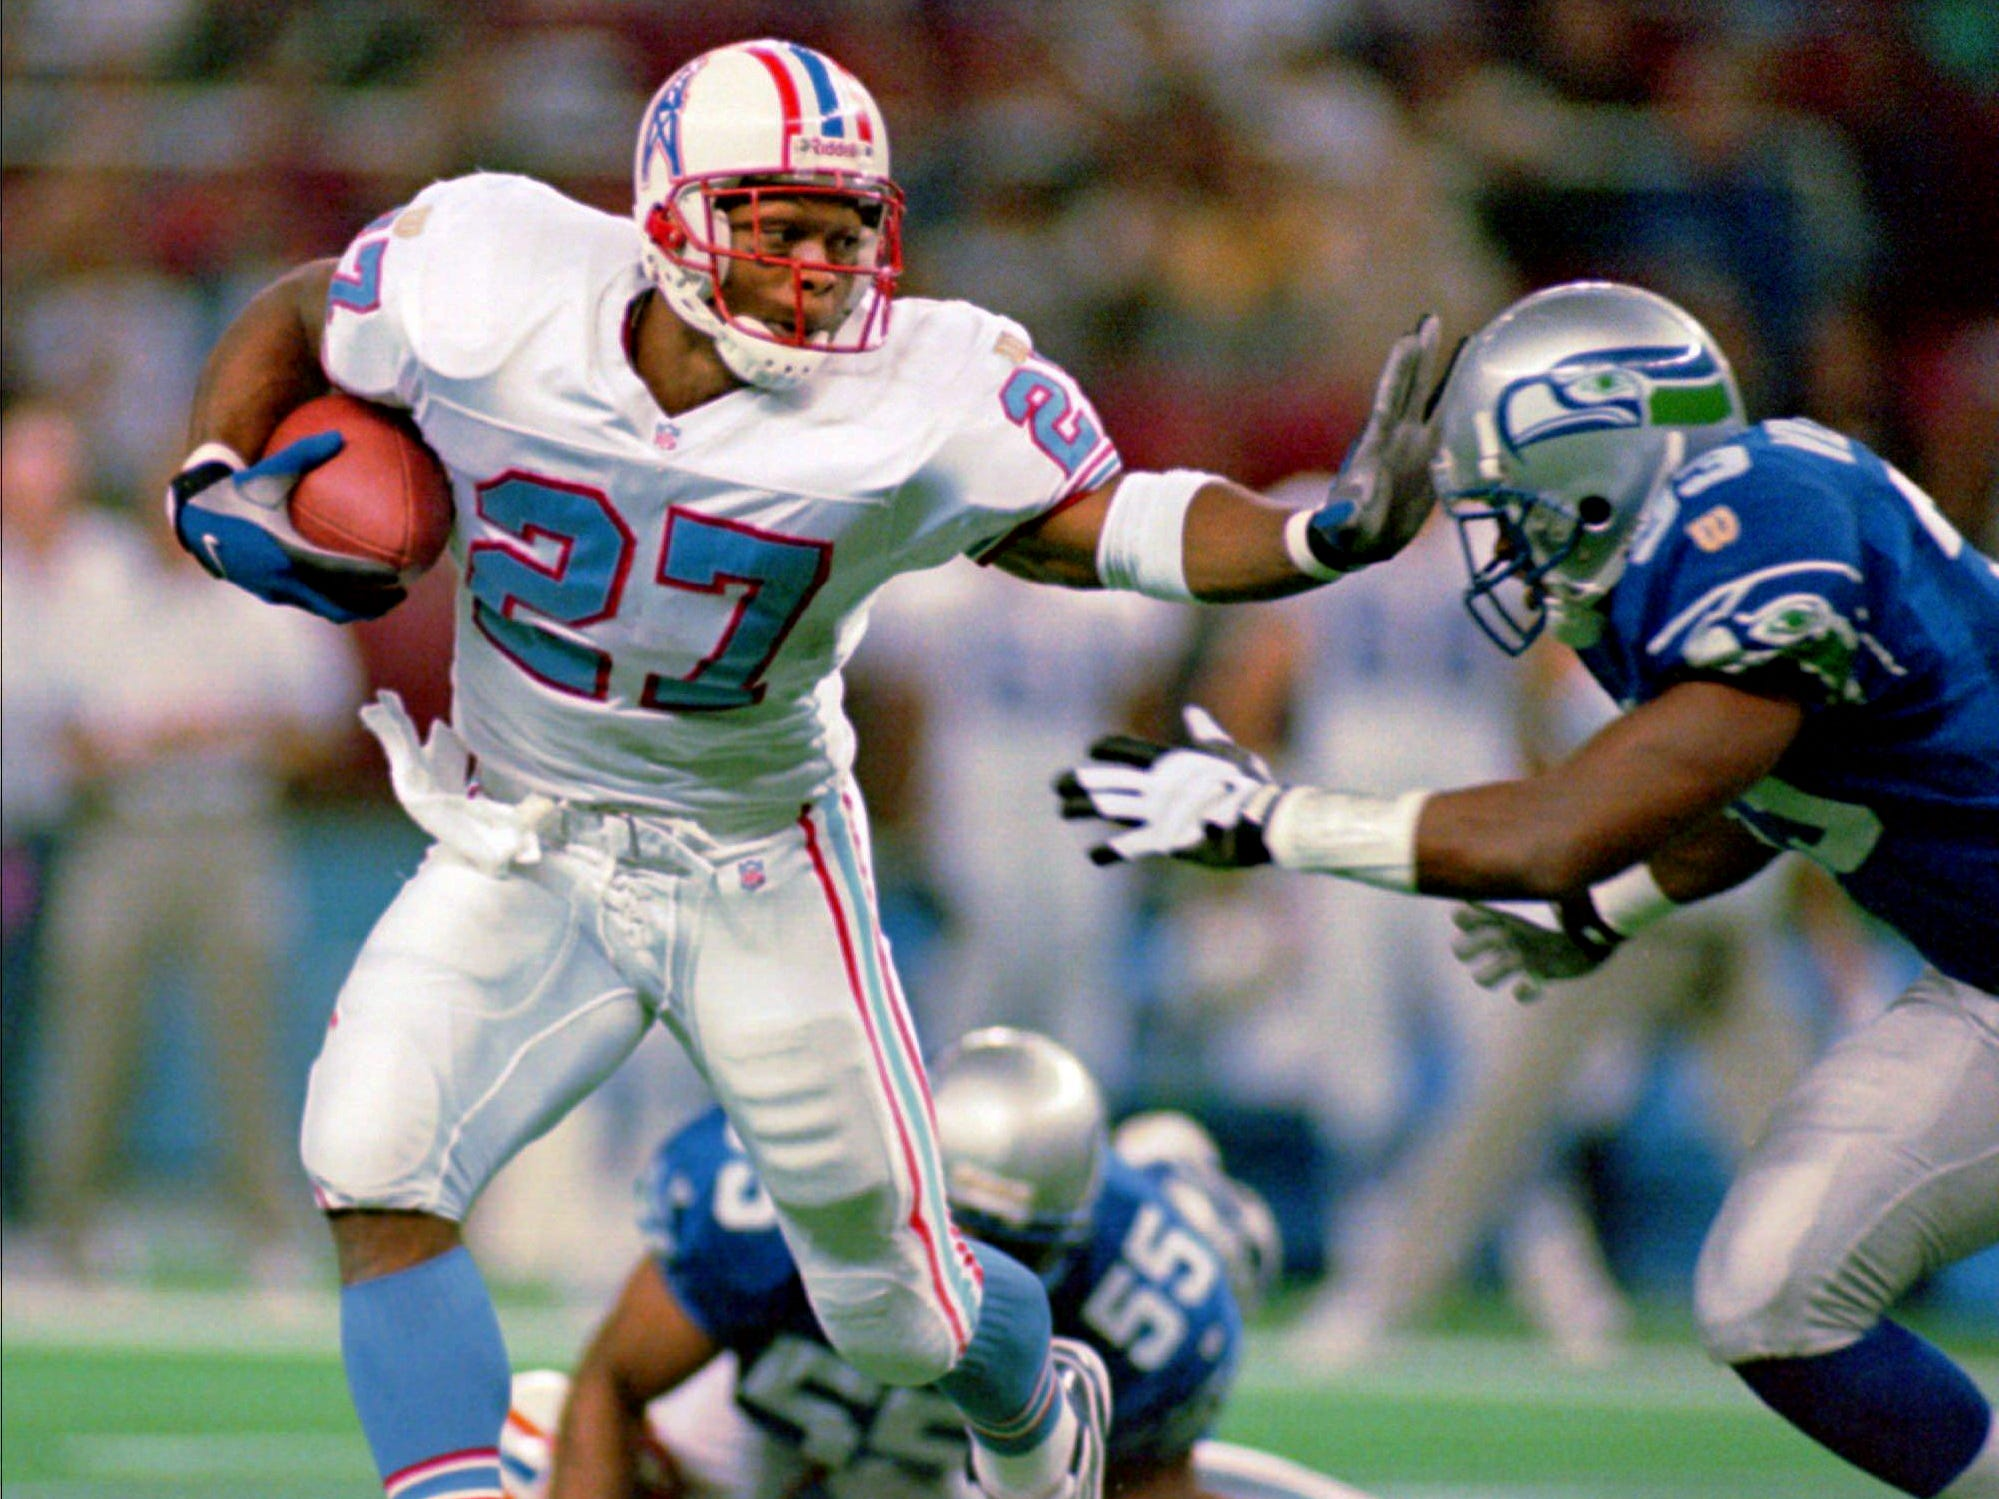 Houston Oilers running back Eddie George (27) holds off Seattle Seahawks defender Darryl Williams (33) in the first quarter of their Nov. 3, 1996 game in Seattle.